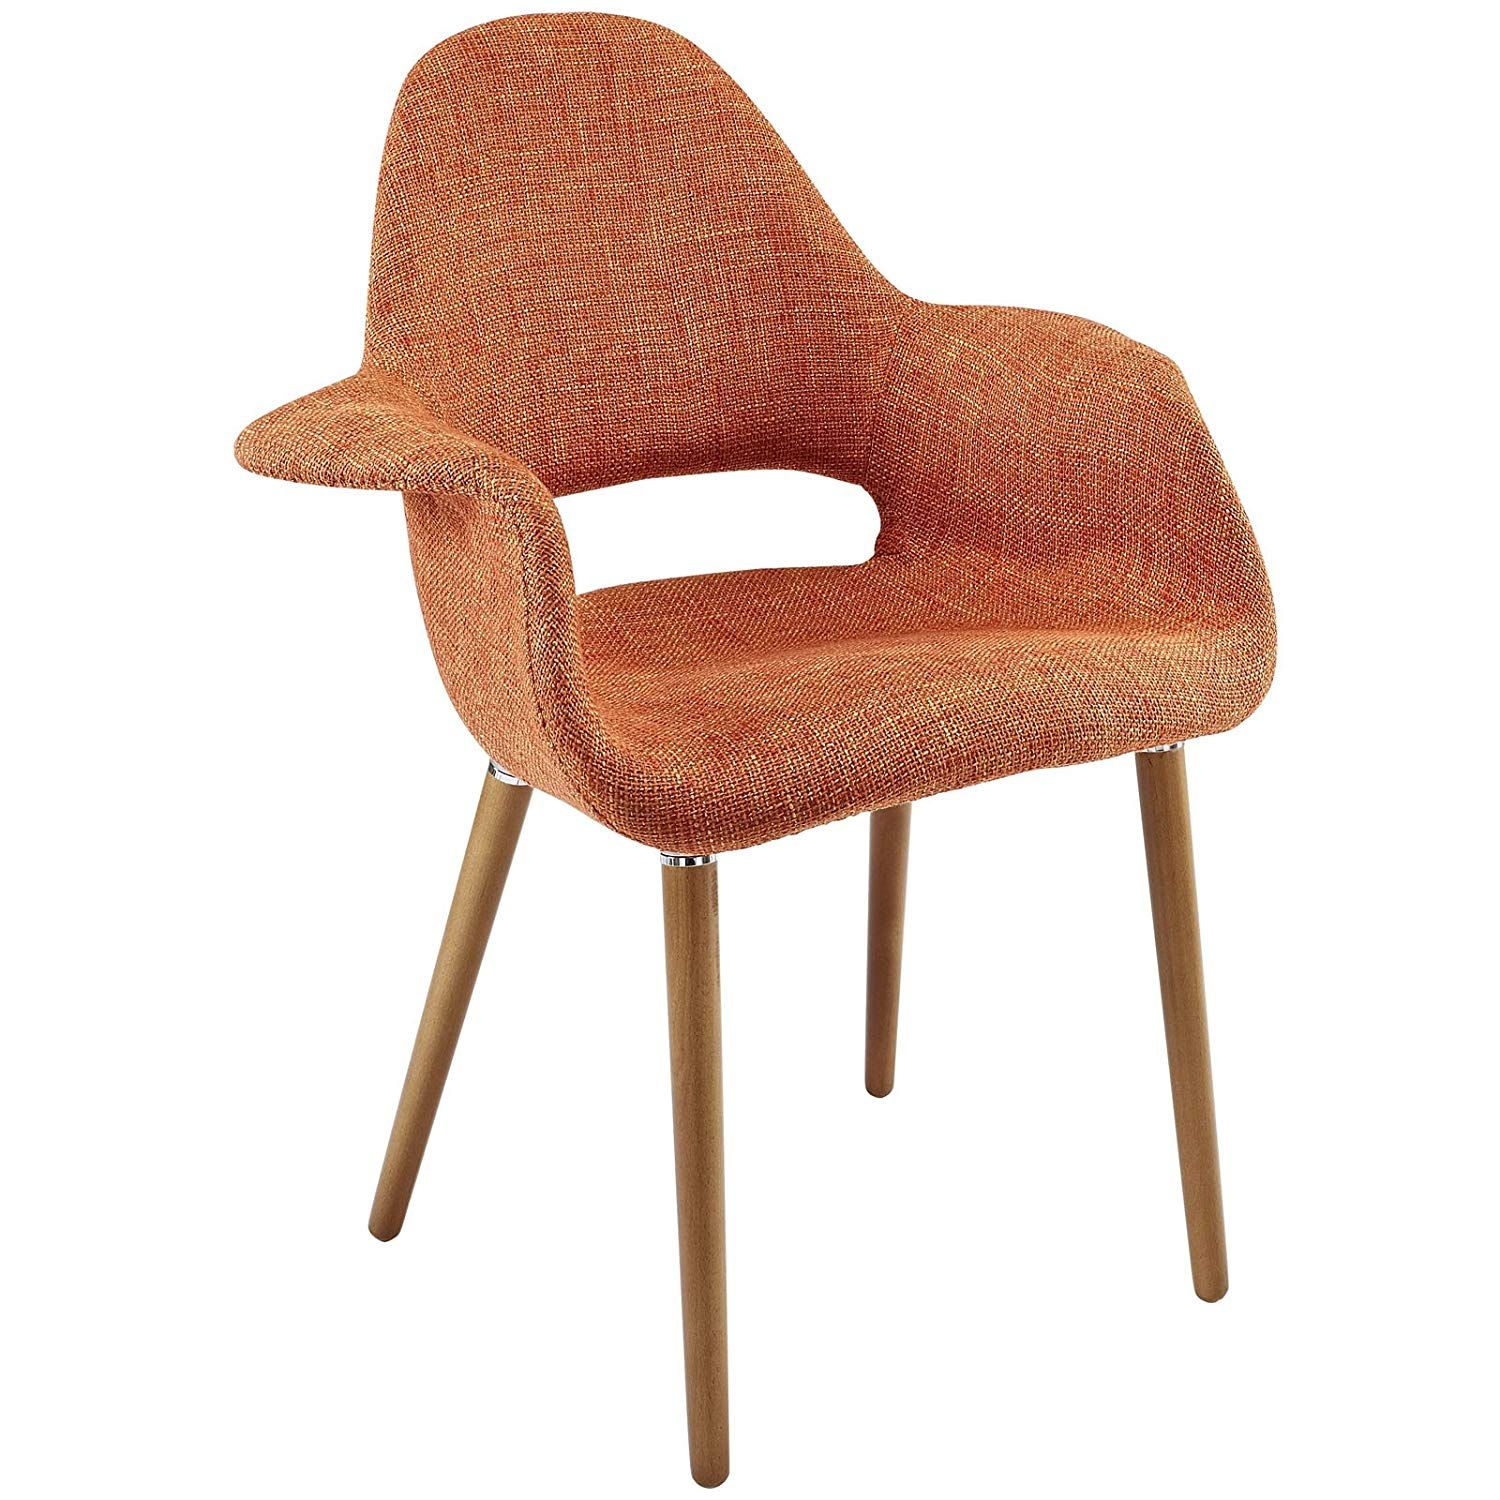 Traveller Location - Modway Aegis Mid-Century Modern Upholstered Fabric Organic  Dining Armchair With Wood Legs In Orange - Chairs